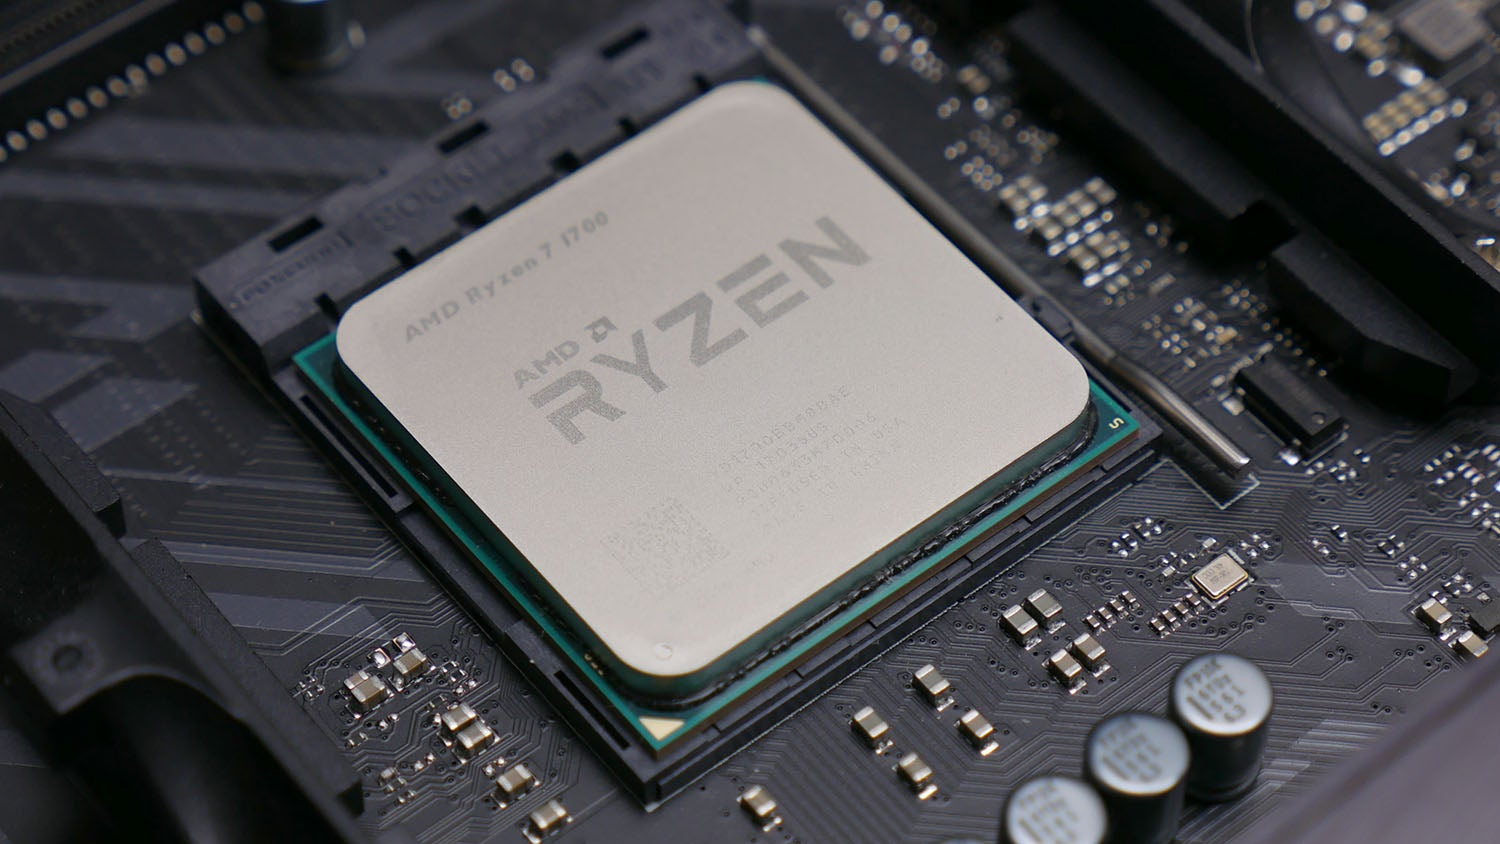 Amd Ryzen 7 1700 Review Trusted Reviews